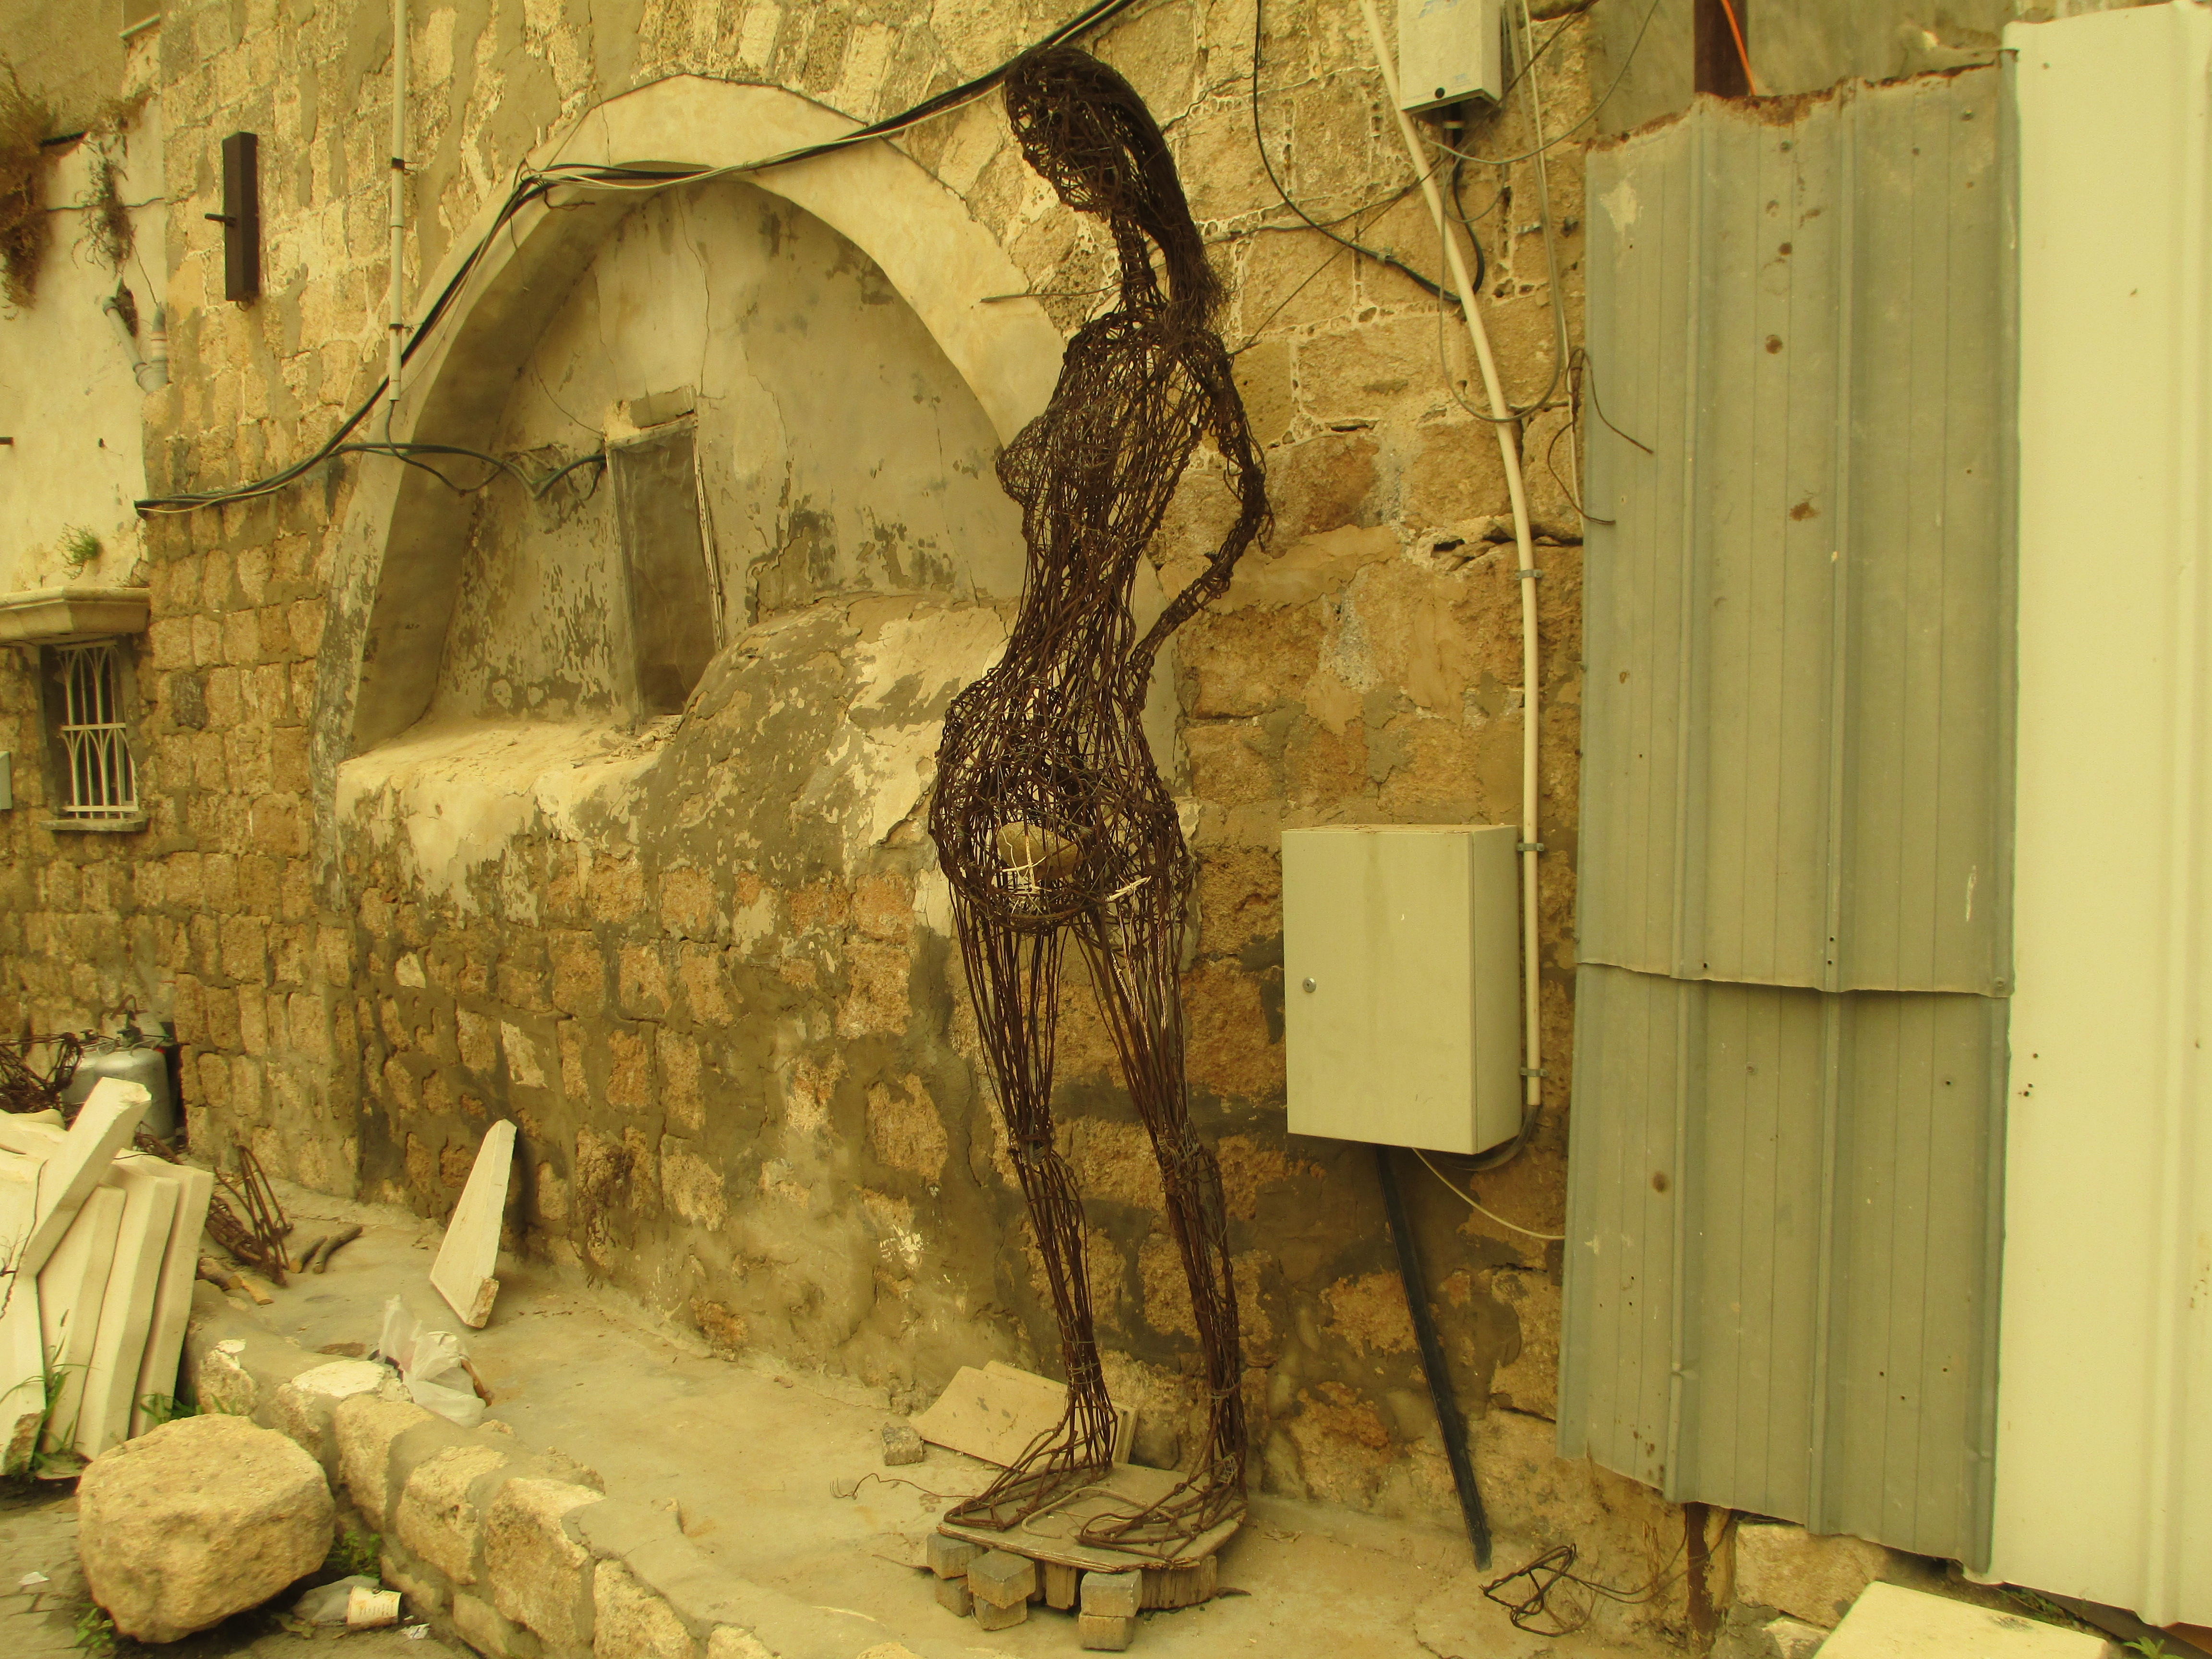 File:PikiWiki Israel 44961 Pregnant woman sculpture by Nihad Dabeet ...